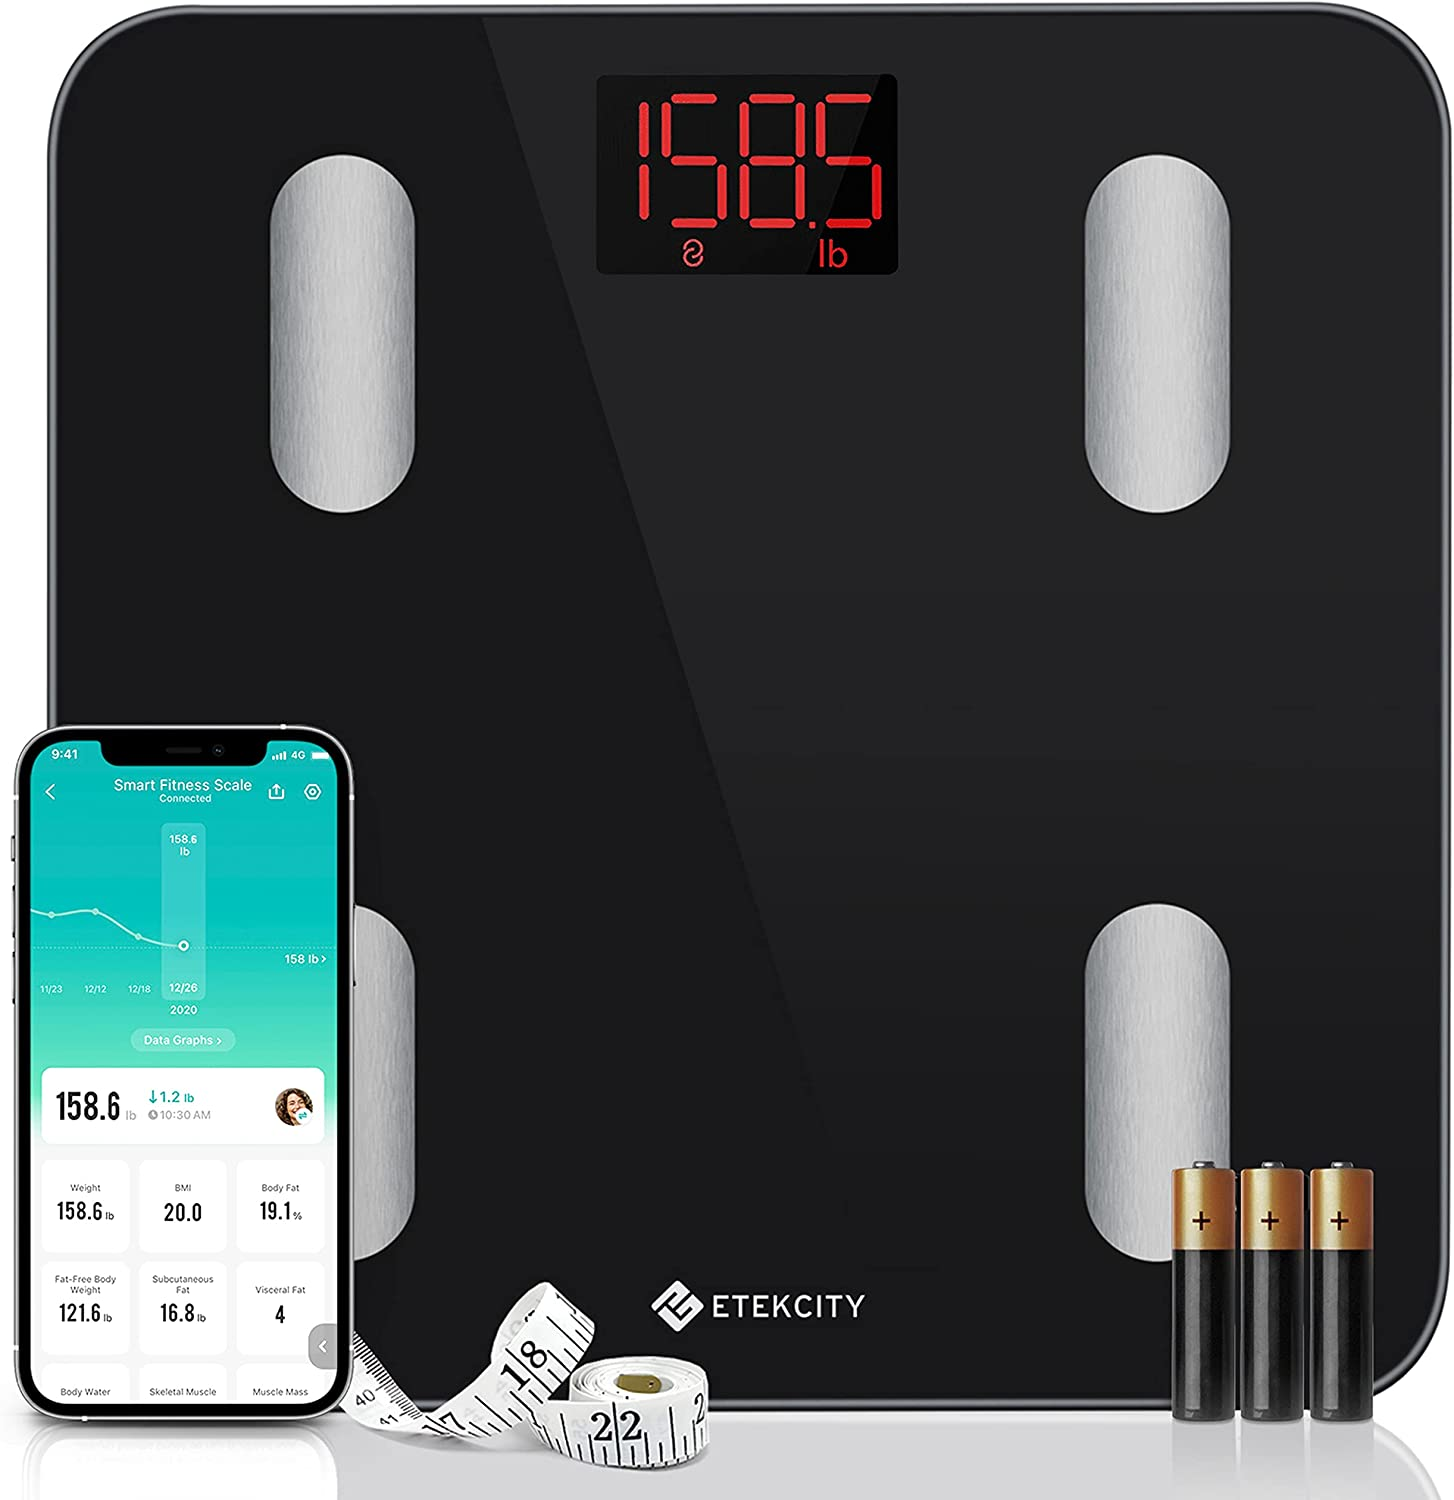 Etekcity Scales for Body Weight Low price Scale Bathroom Digital Limited time cheap sale f